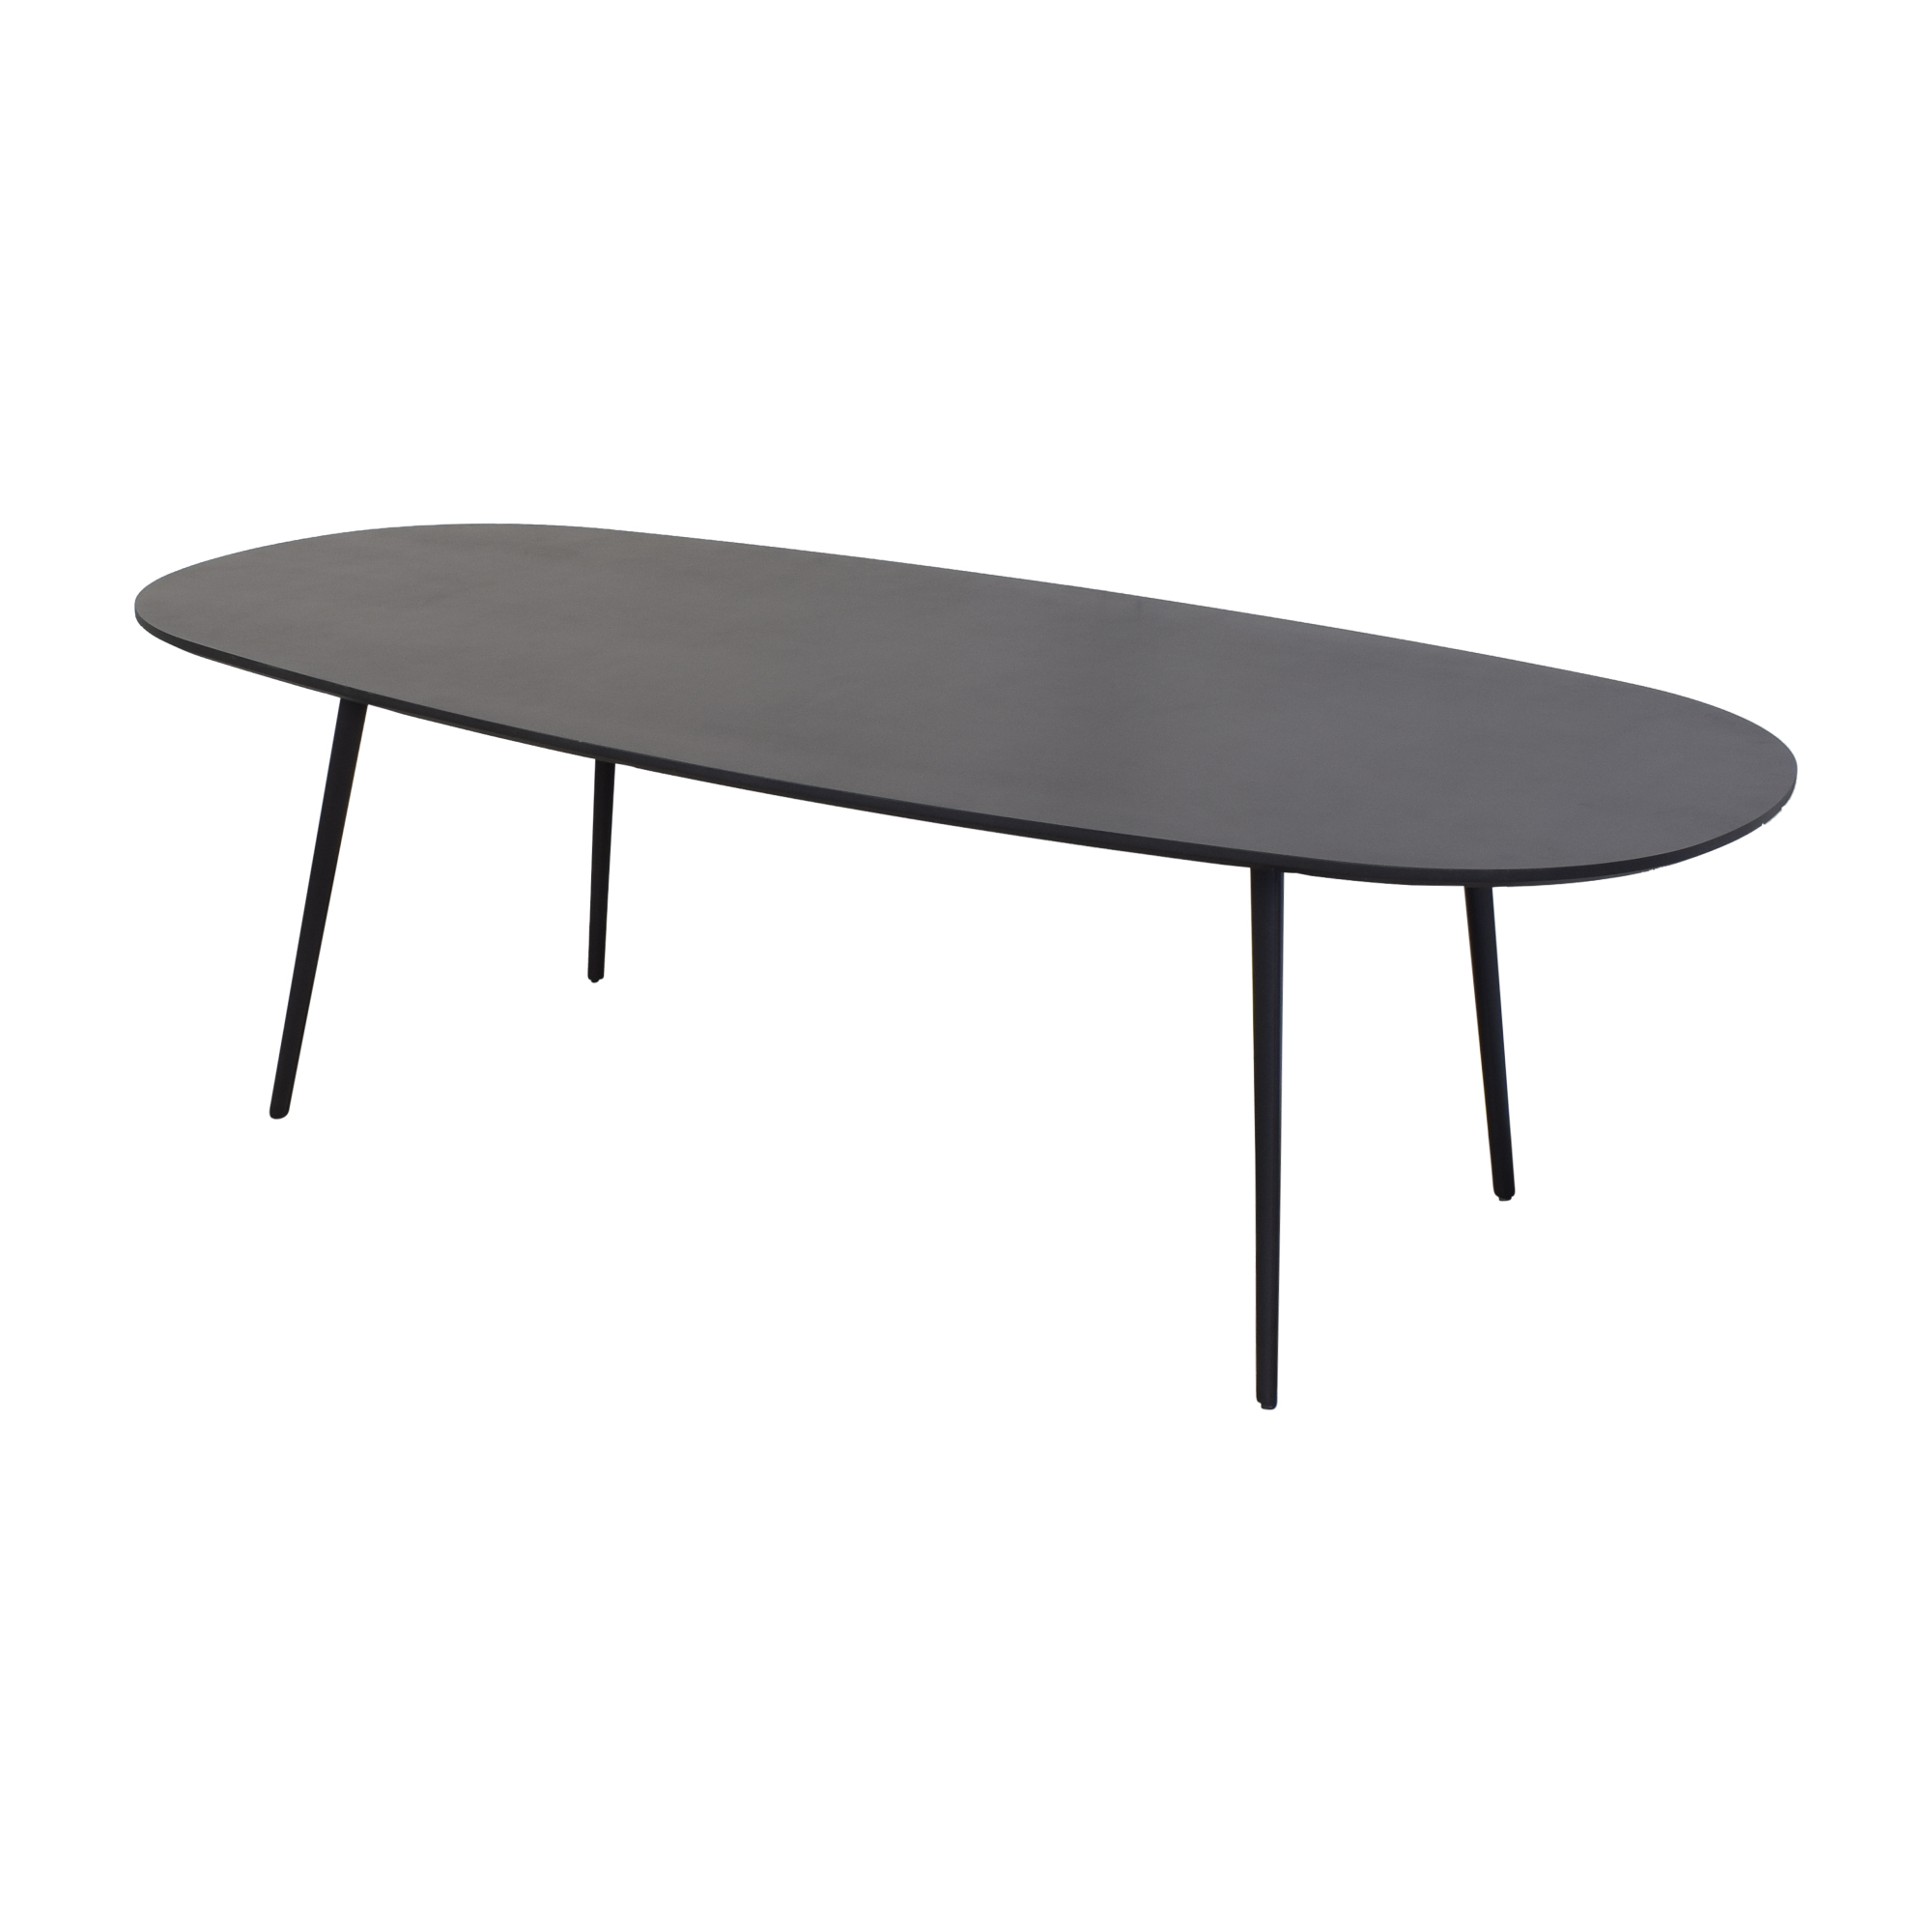 shop Leland International Leland International Fly Oval Table online